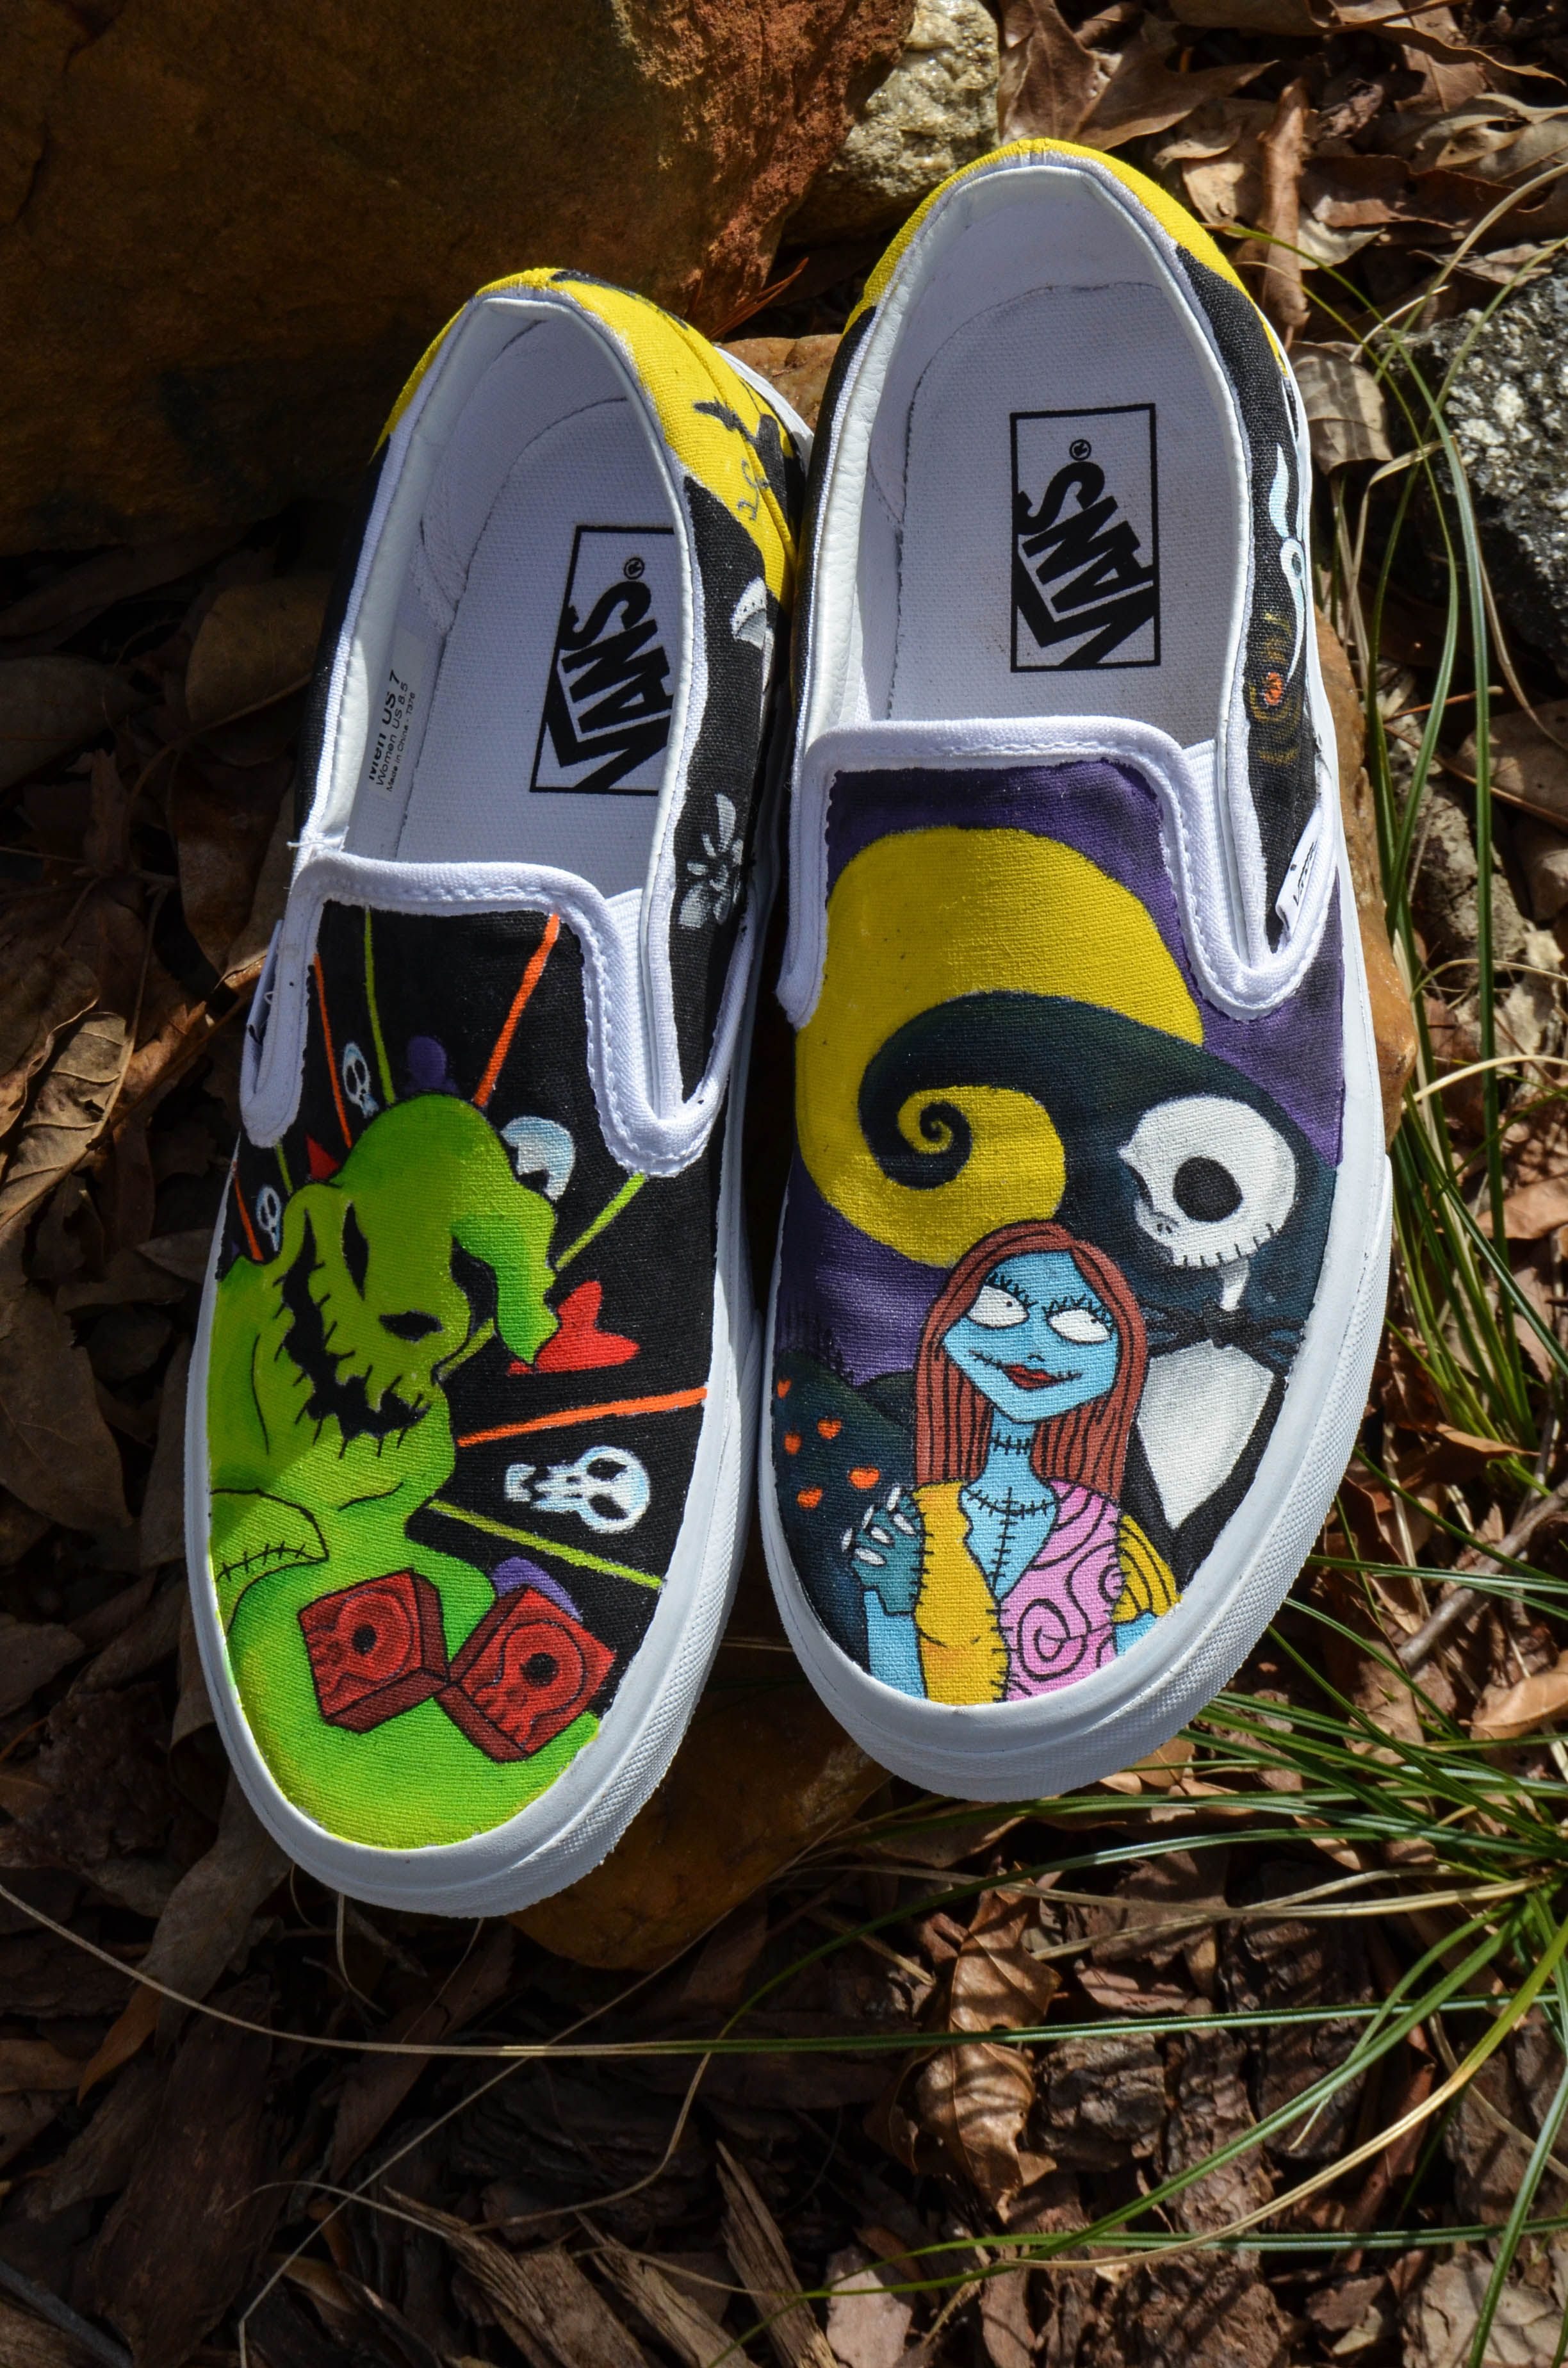 Custom Nightmare Before Christmas shoes from The Wandering